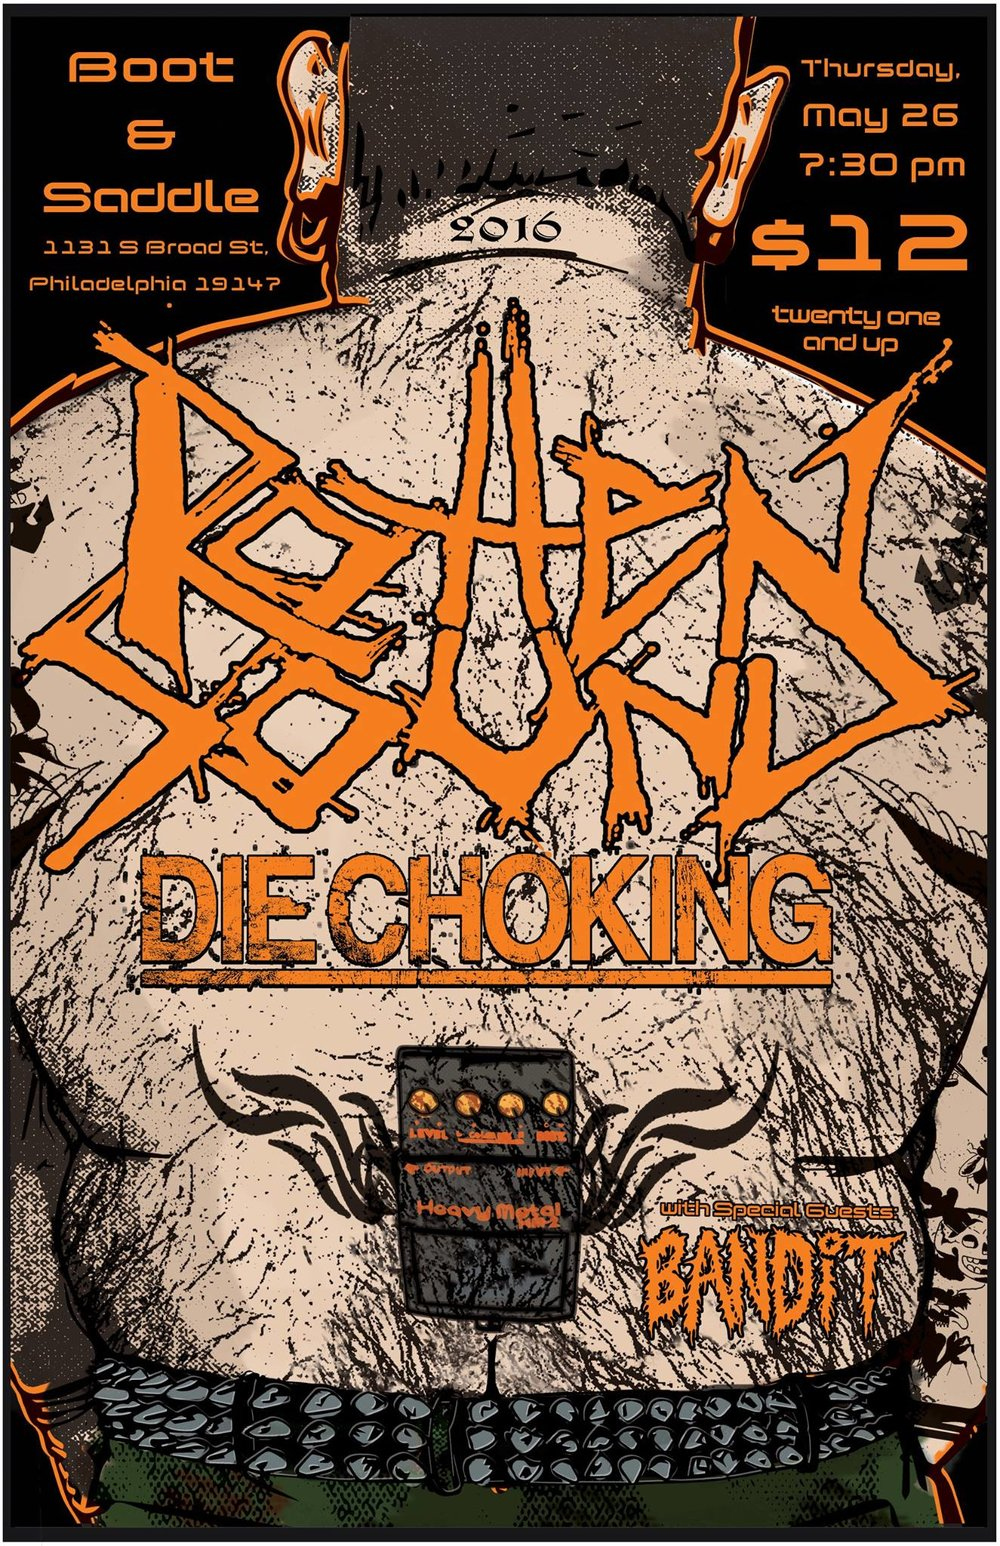 die-choking-rotten-sound.jpg